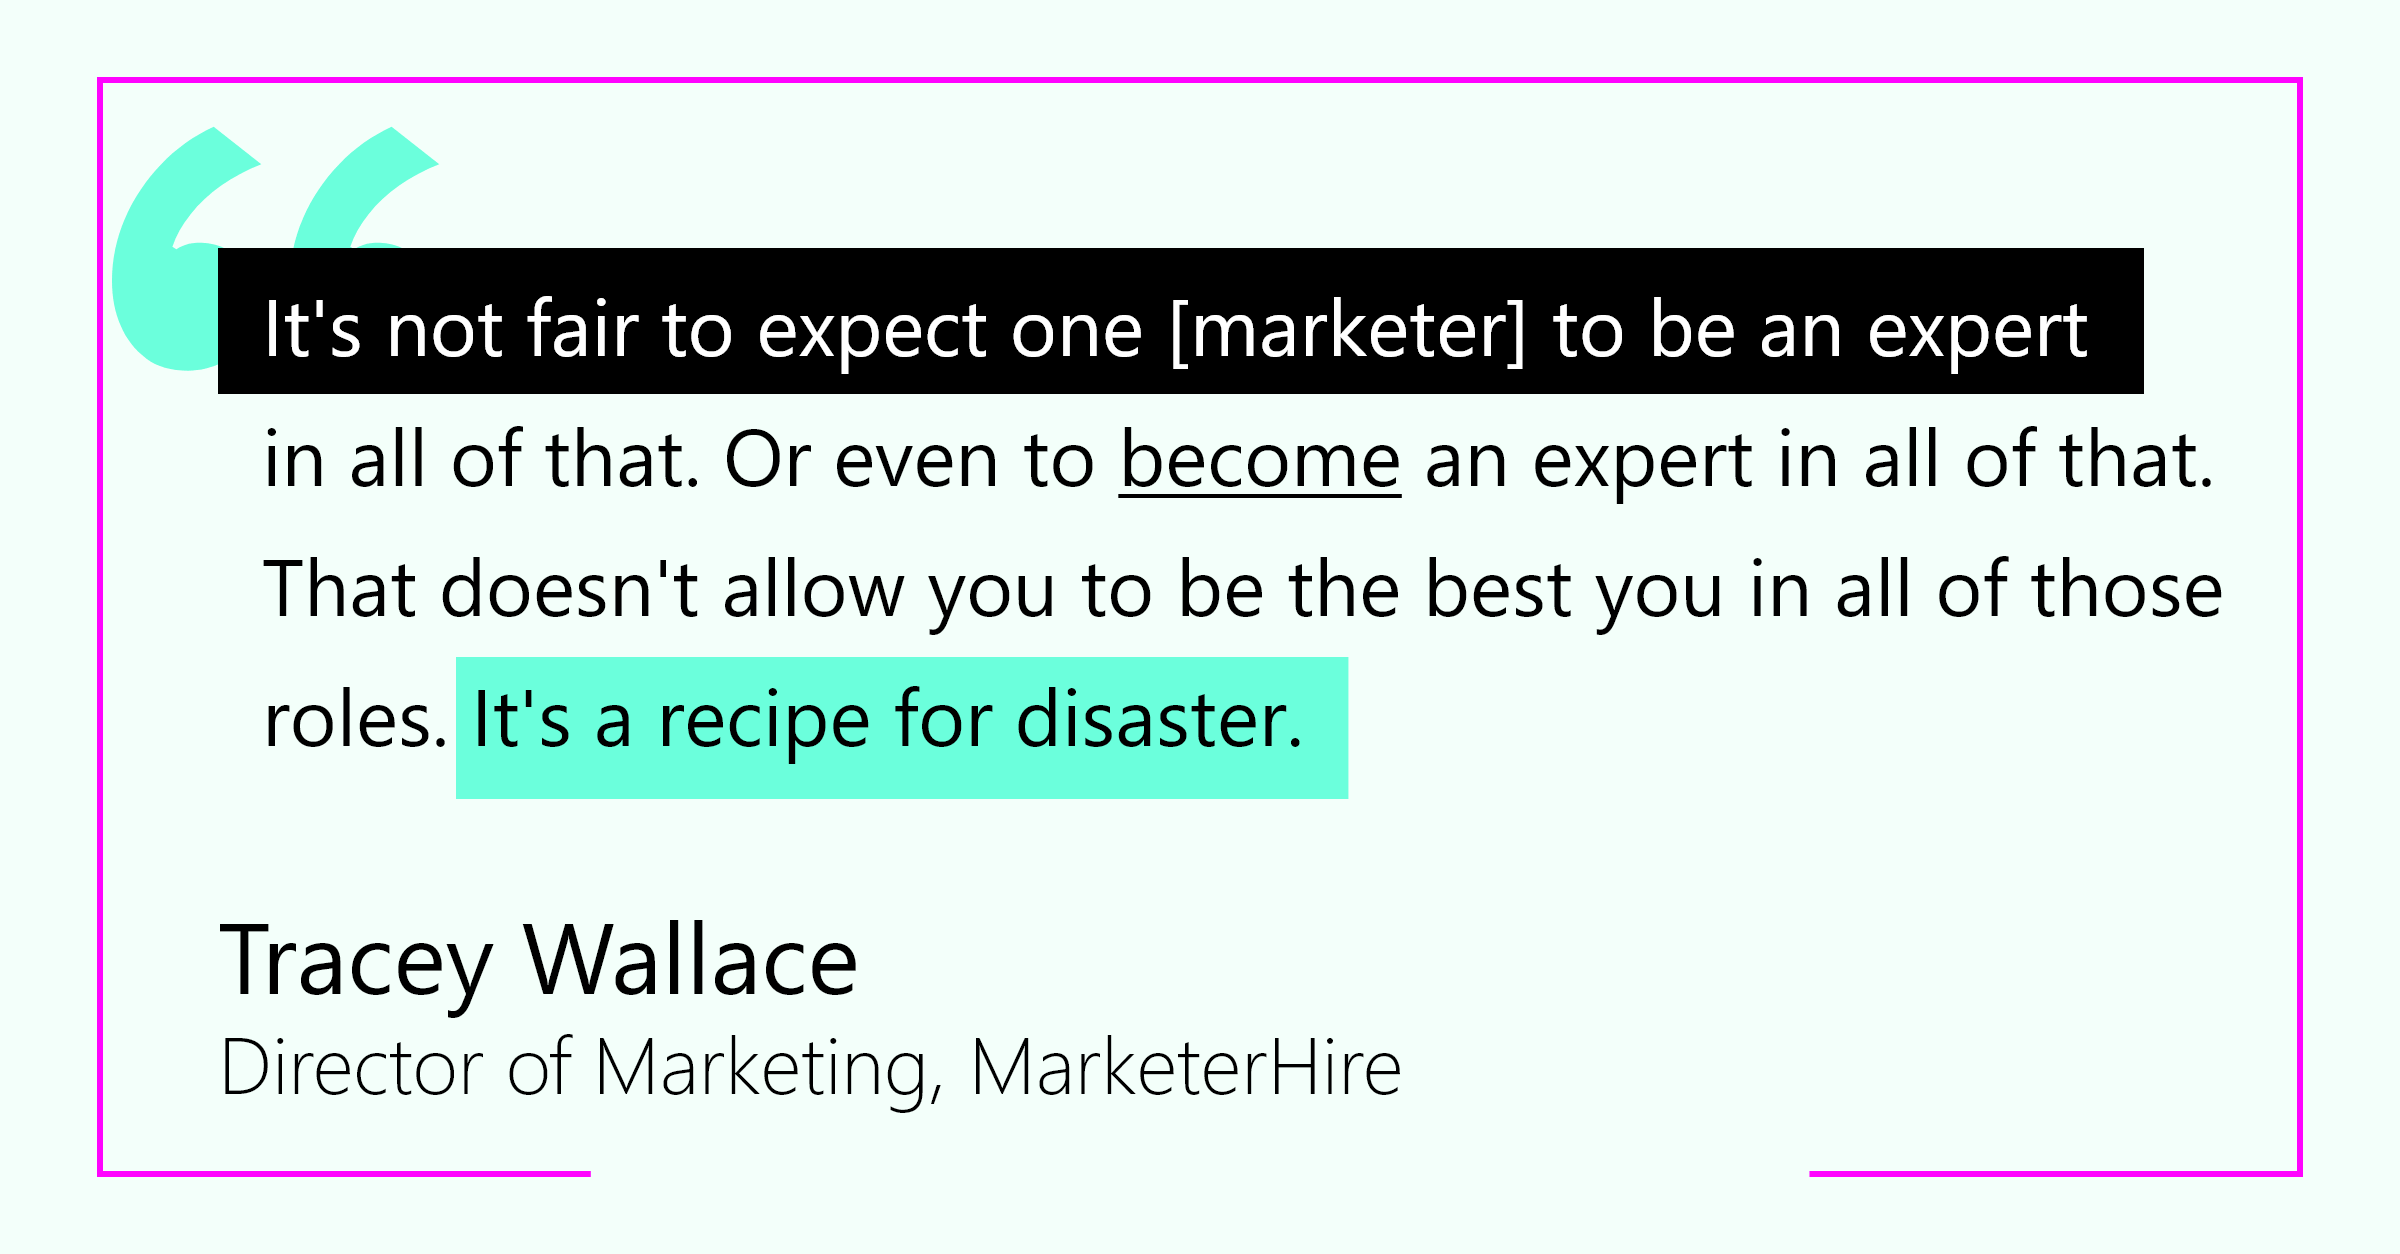 """It's not fair to expect one [marketer] to be an expert in all of that."" -Tracey Wallace, Director of Marketing, MarketerHire"